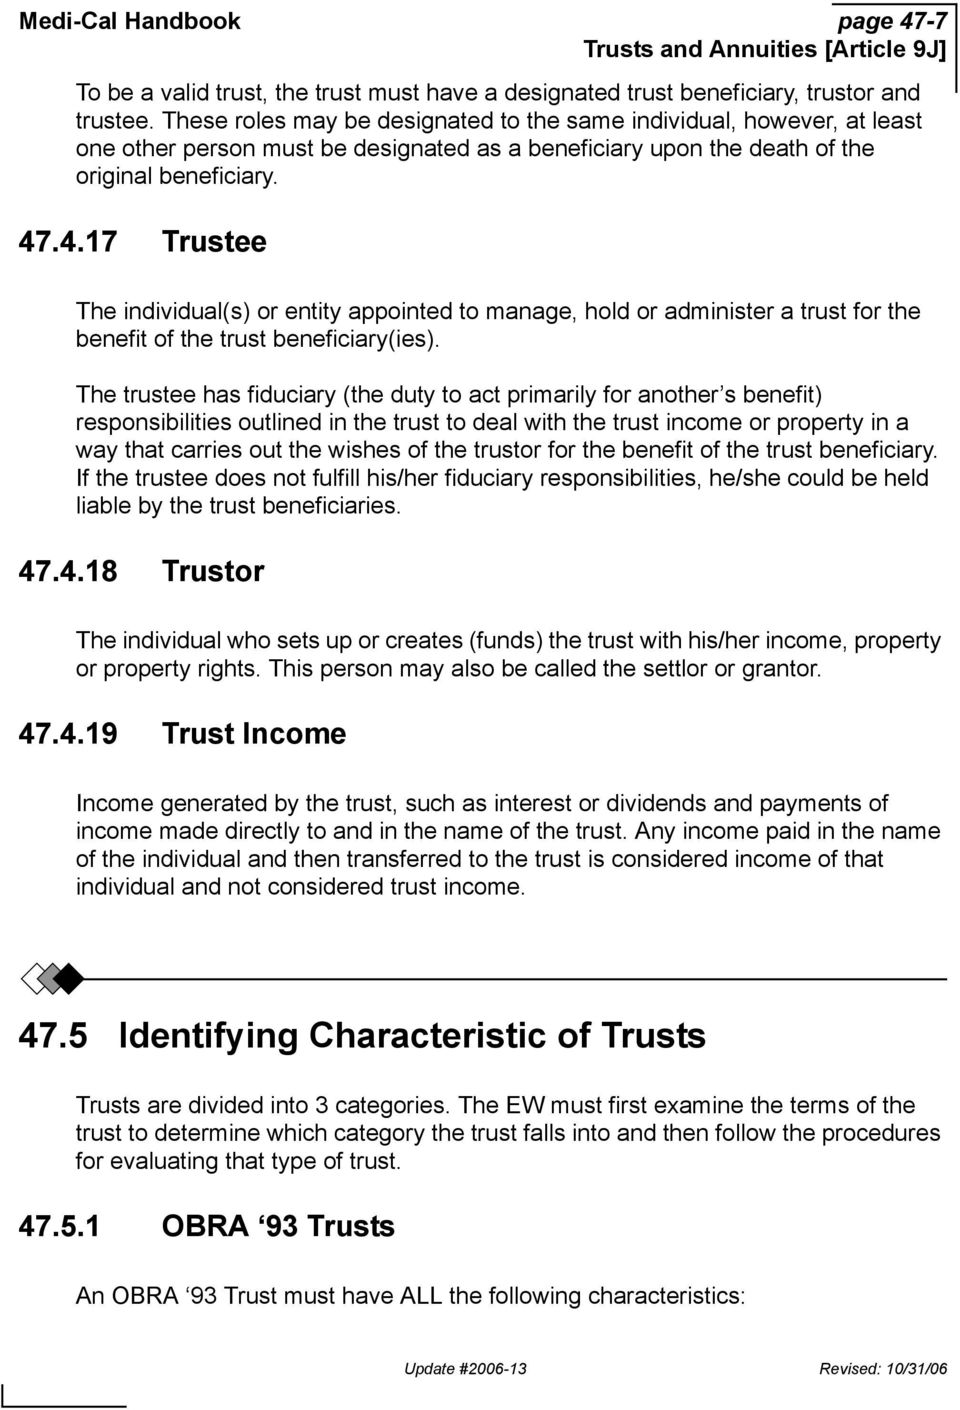 .4.17 Trustee The individual(s) or entity appointed to manage, hold or administer a trust for the benefit of the trust beneficiary(ies).